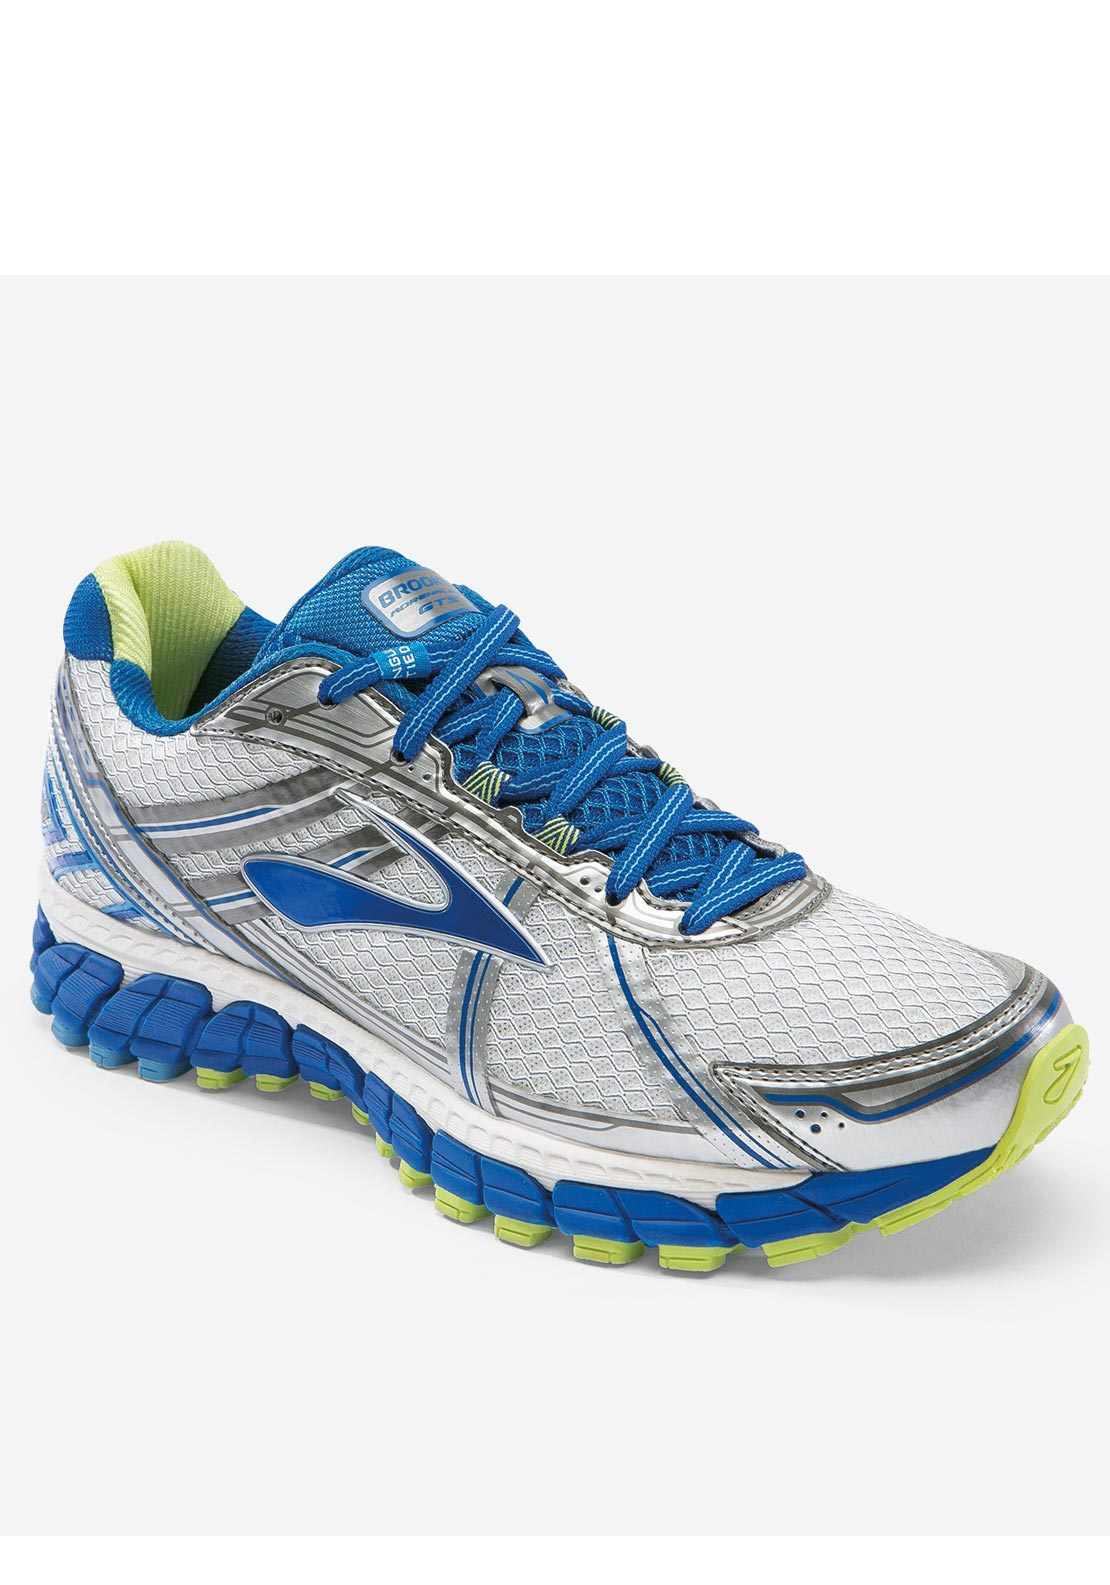 Brooks Womens Adrenaline GTS 15 Runner, Silver